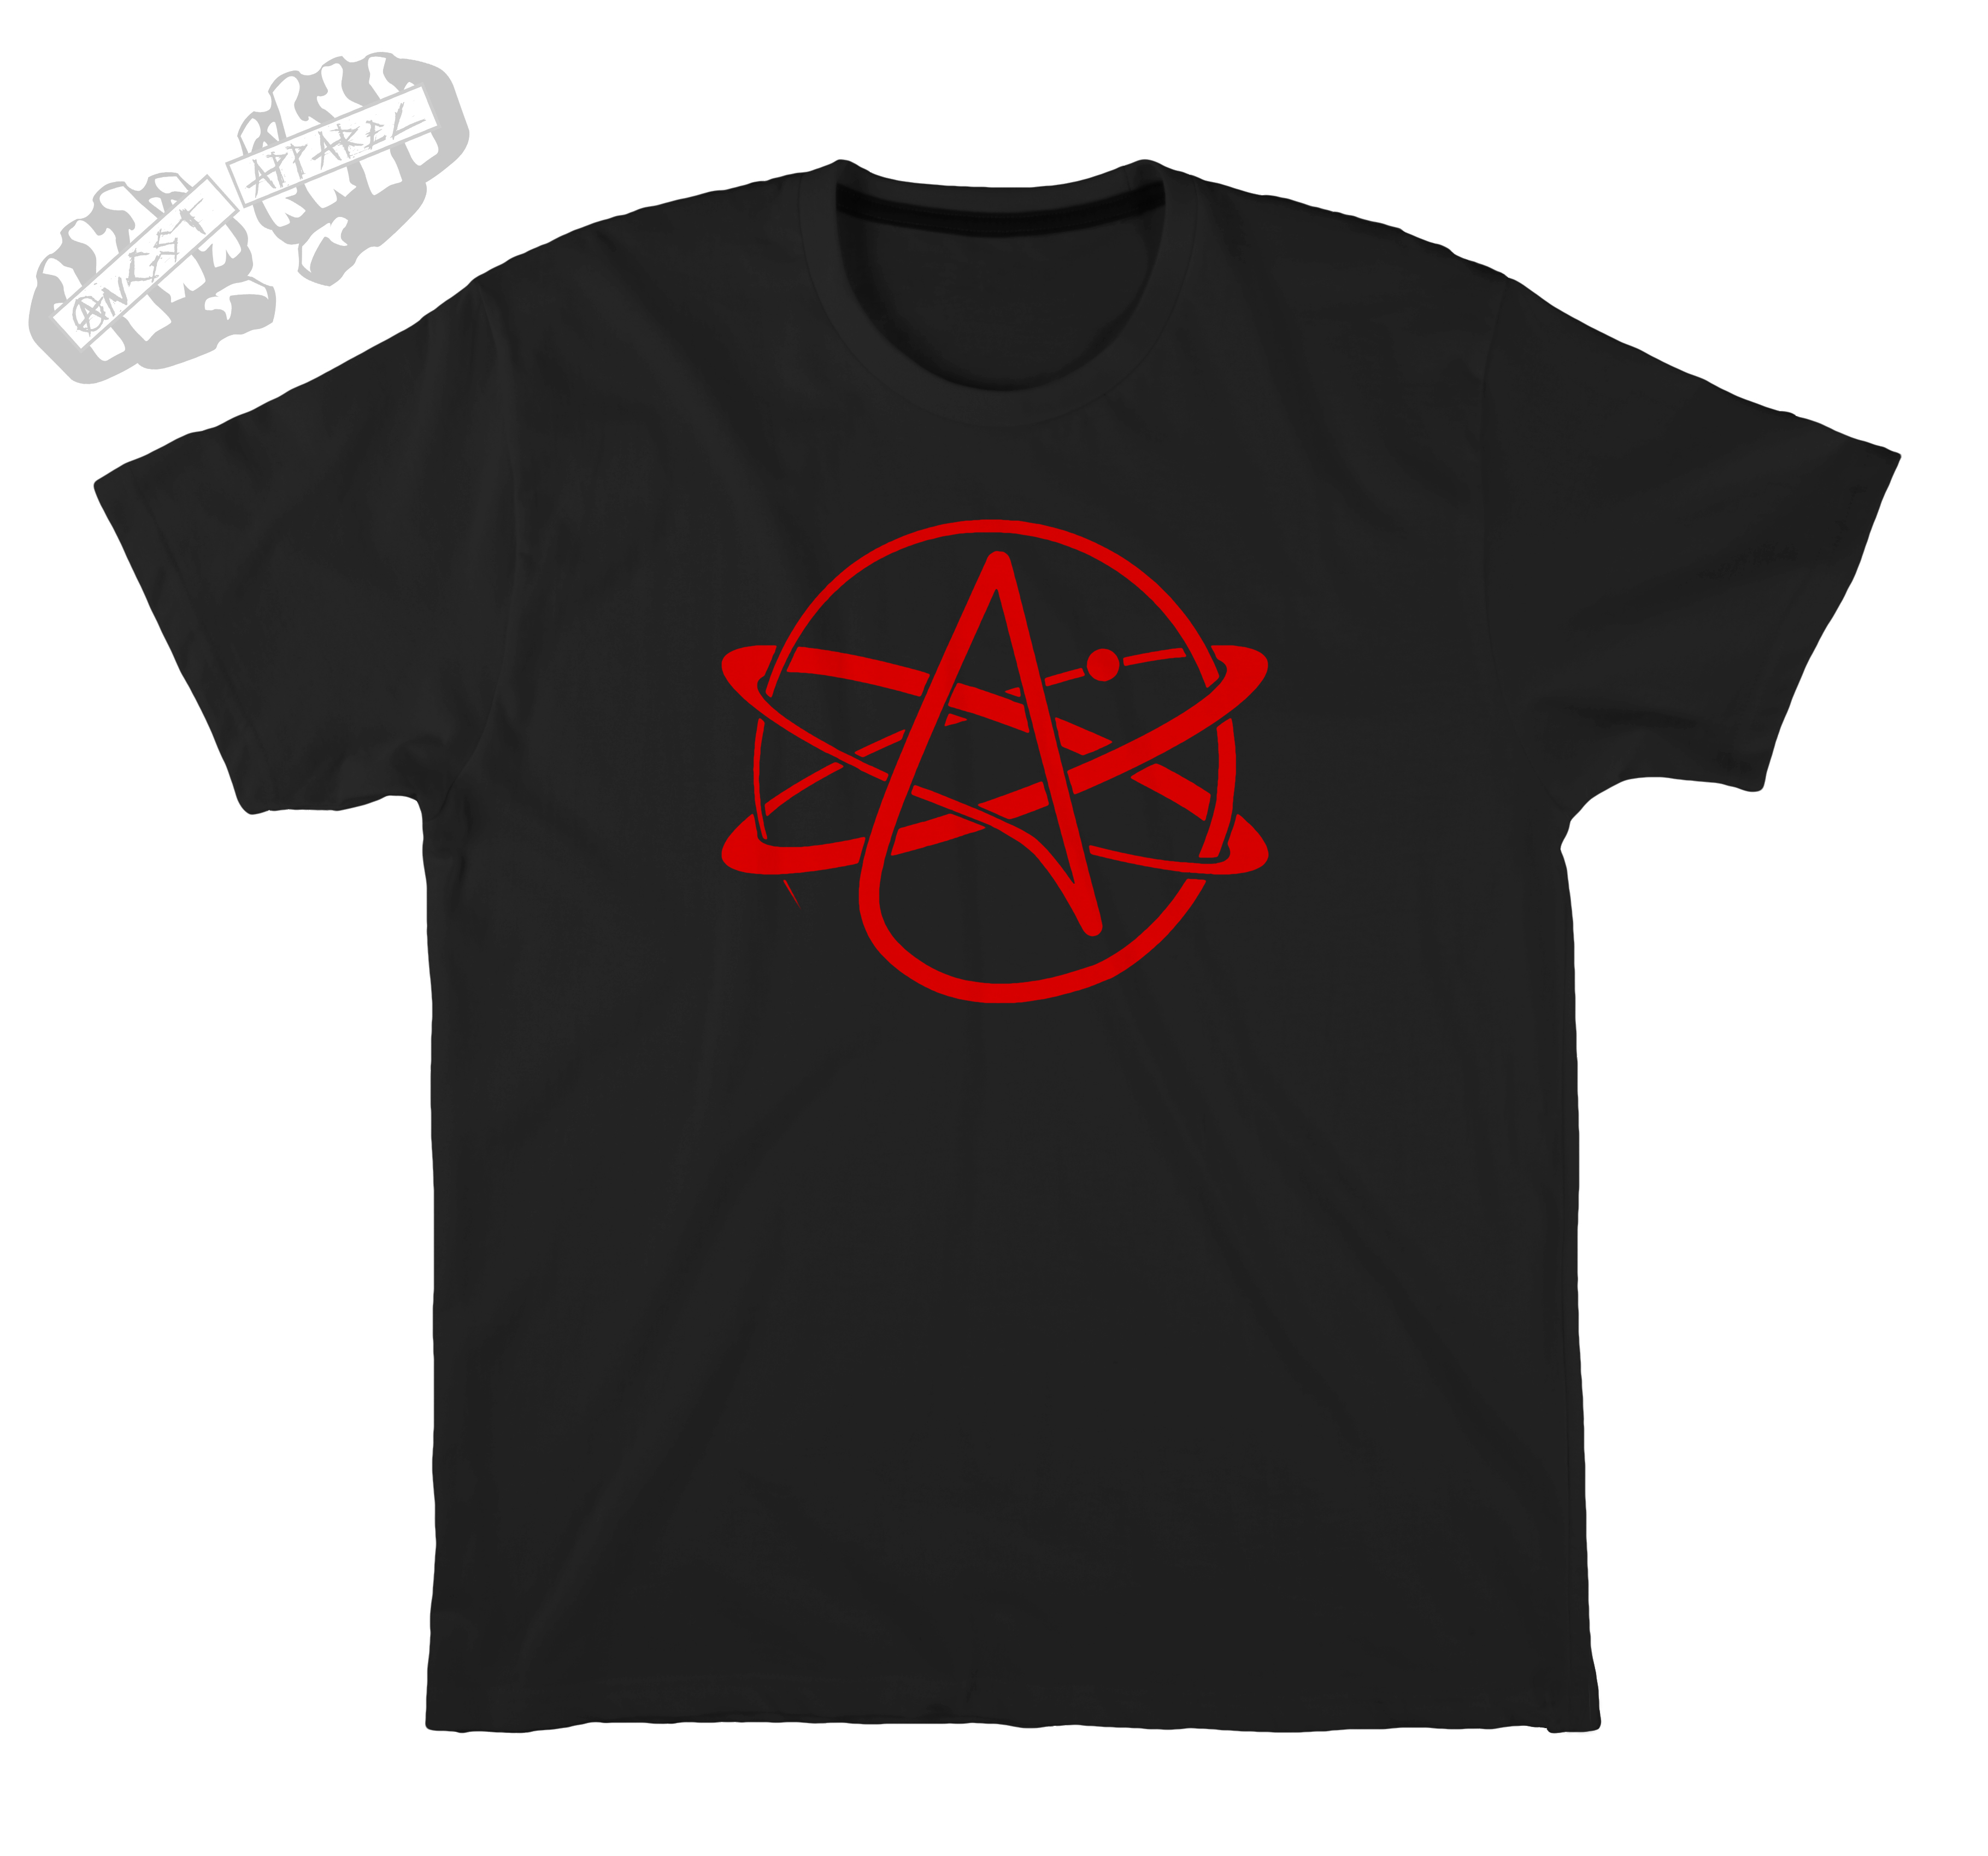 Offensive atheist shirt for the godless and non believers atheist t shirts custom t shirt designs biocorpaavc